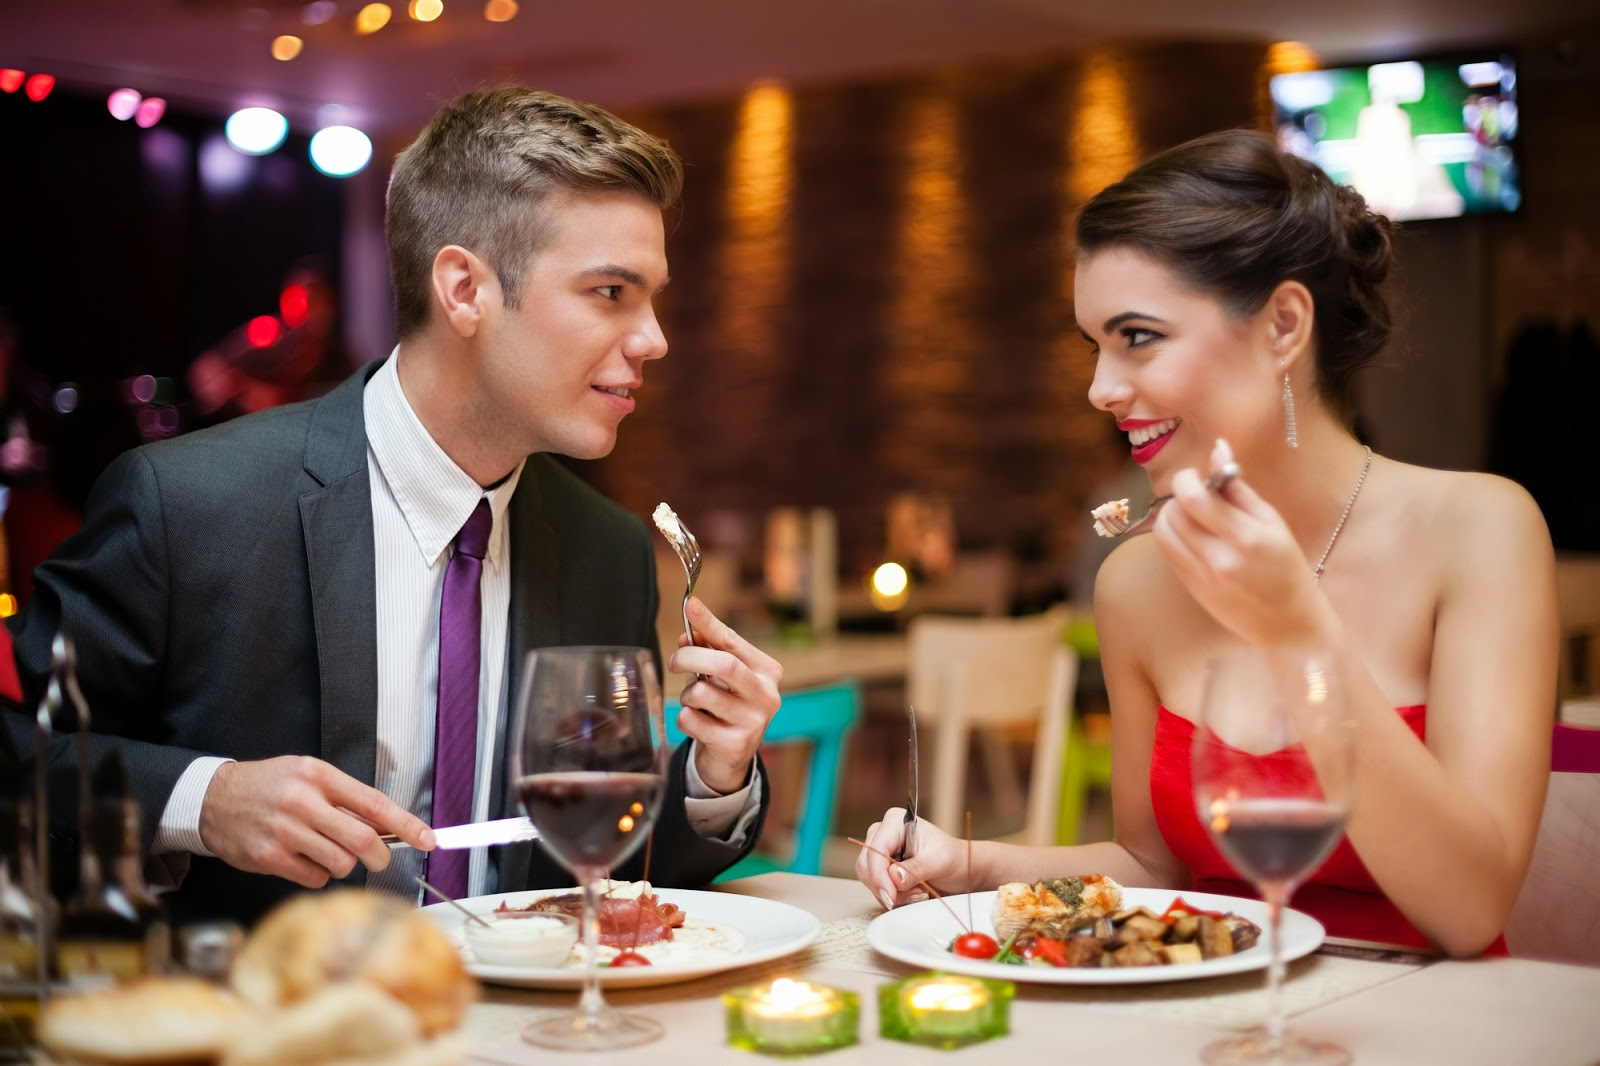 Image result for date in restaurant